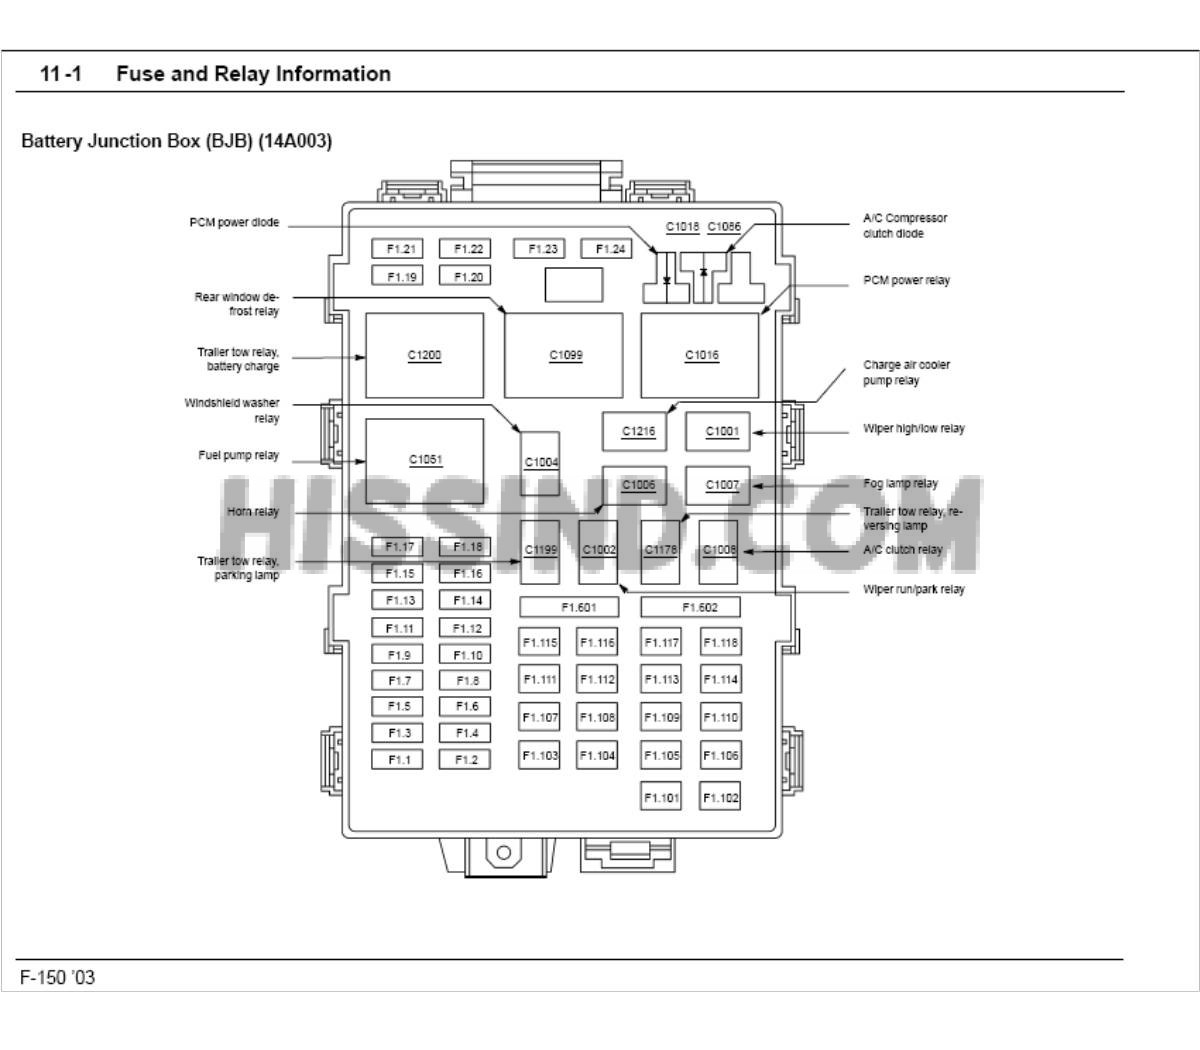 hight resolution of 2007 ford f150 ac relay location wiring diagrams image 2007 ford fusion fuse panel diagram 2007